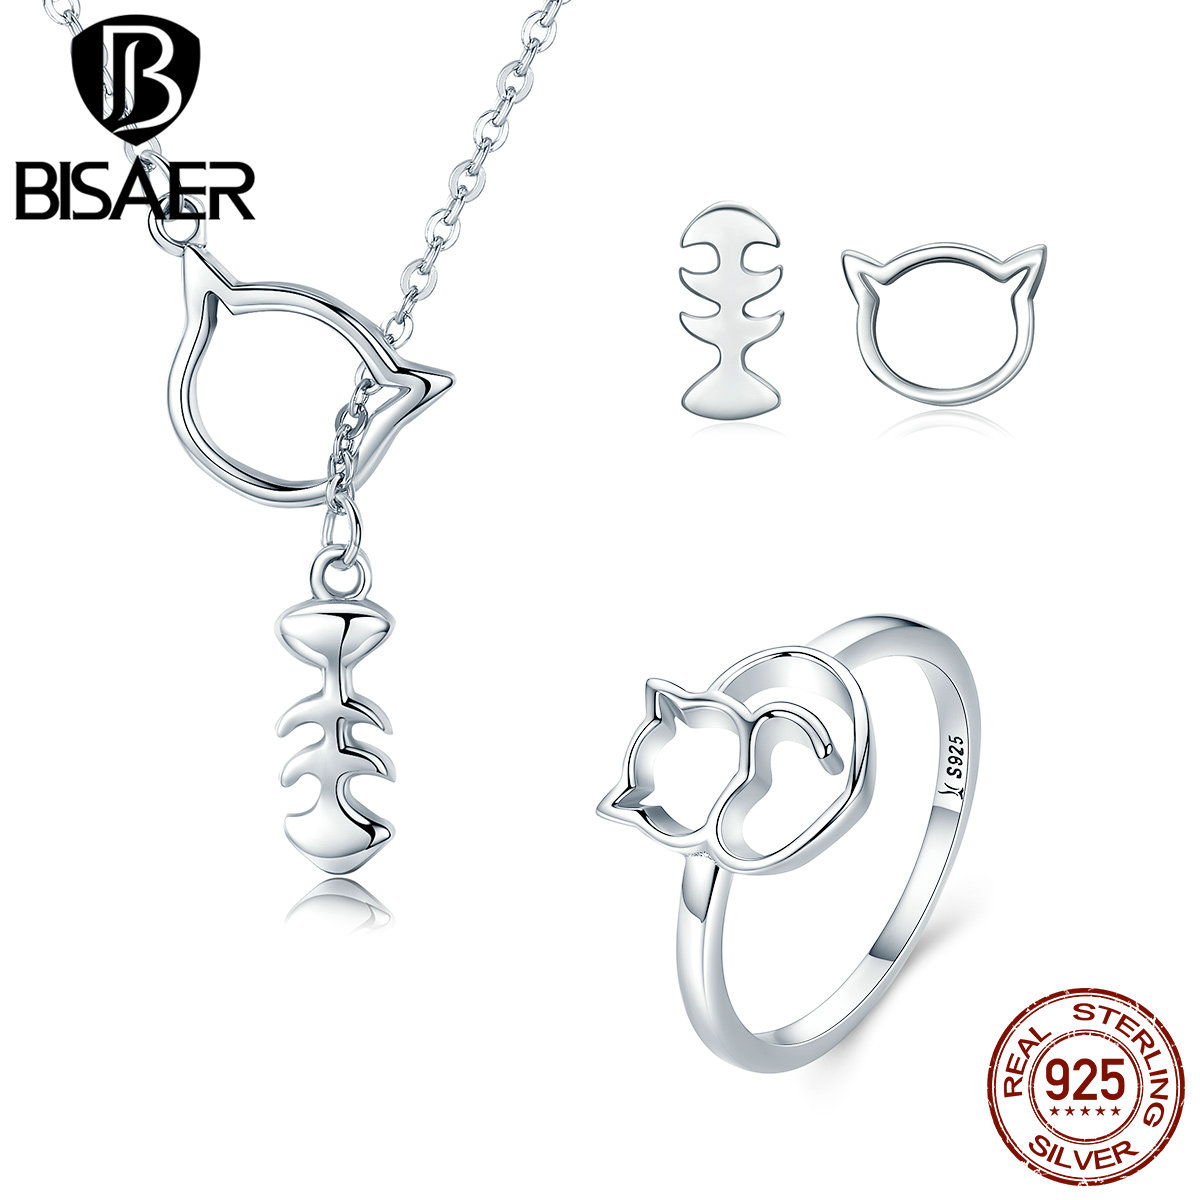 Jewelry & Accessories Jewelry Sets & More Realistic 925 Sterling Silver Lovely Cat Love Fish Bone Women Pendant Necklace Stud Earrings Ring Jewelry Sets Silver Jewelry Wes041 Modern Techniques